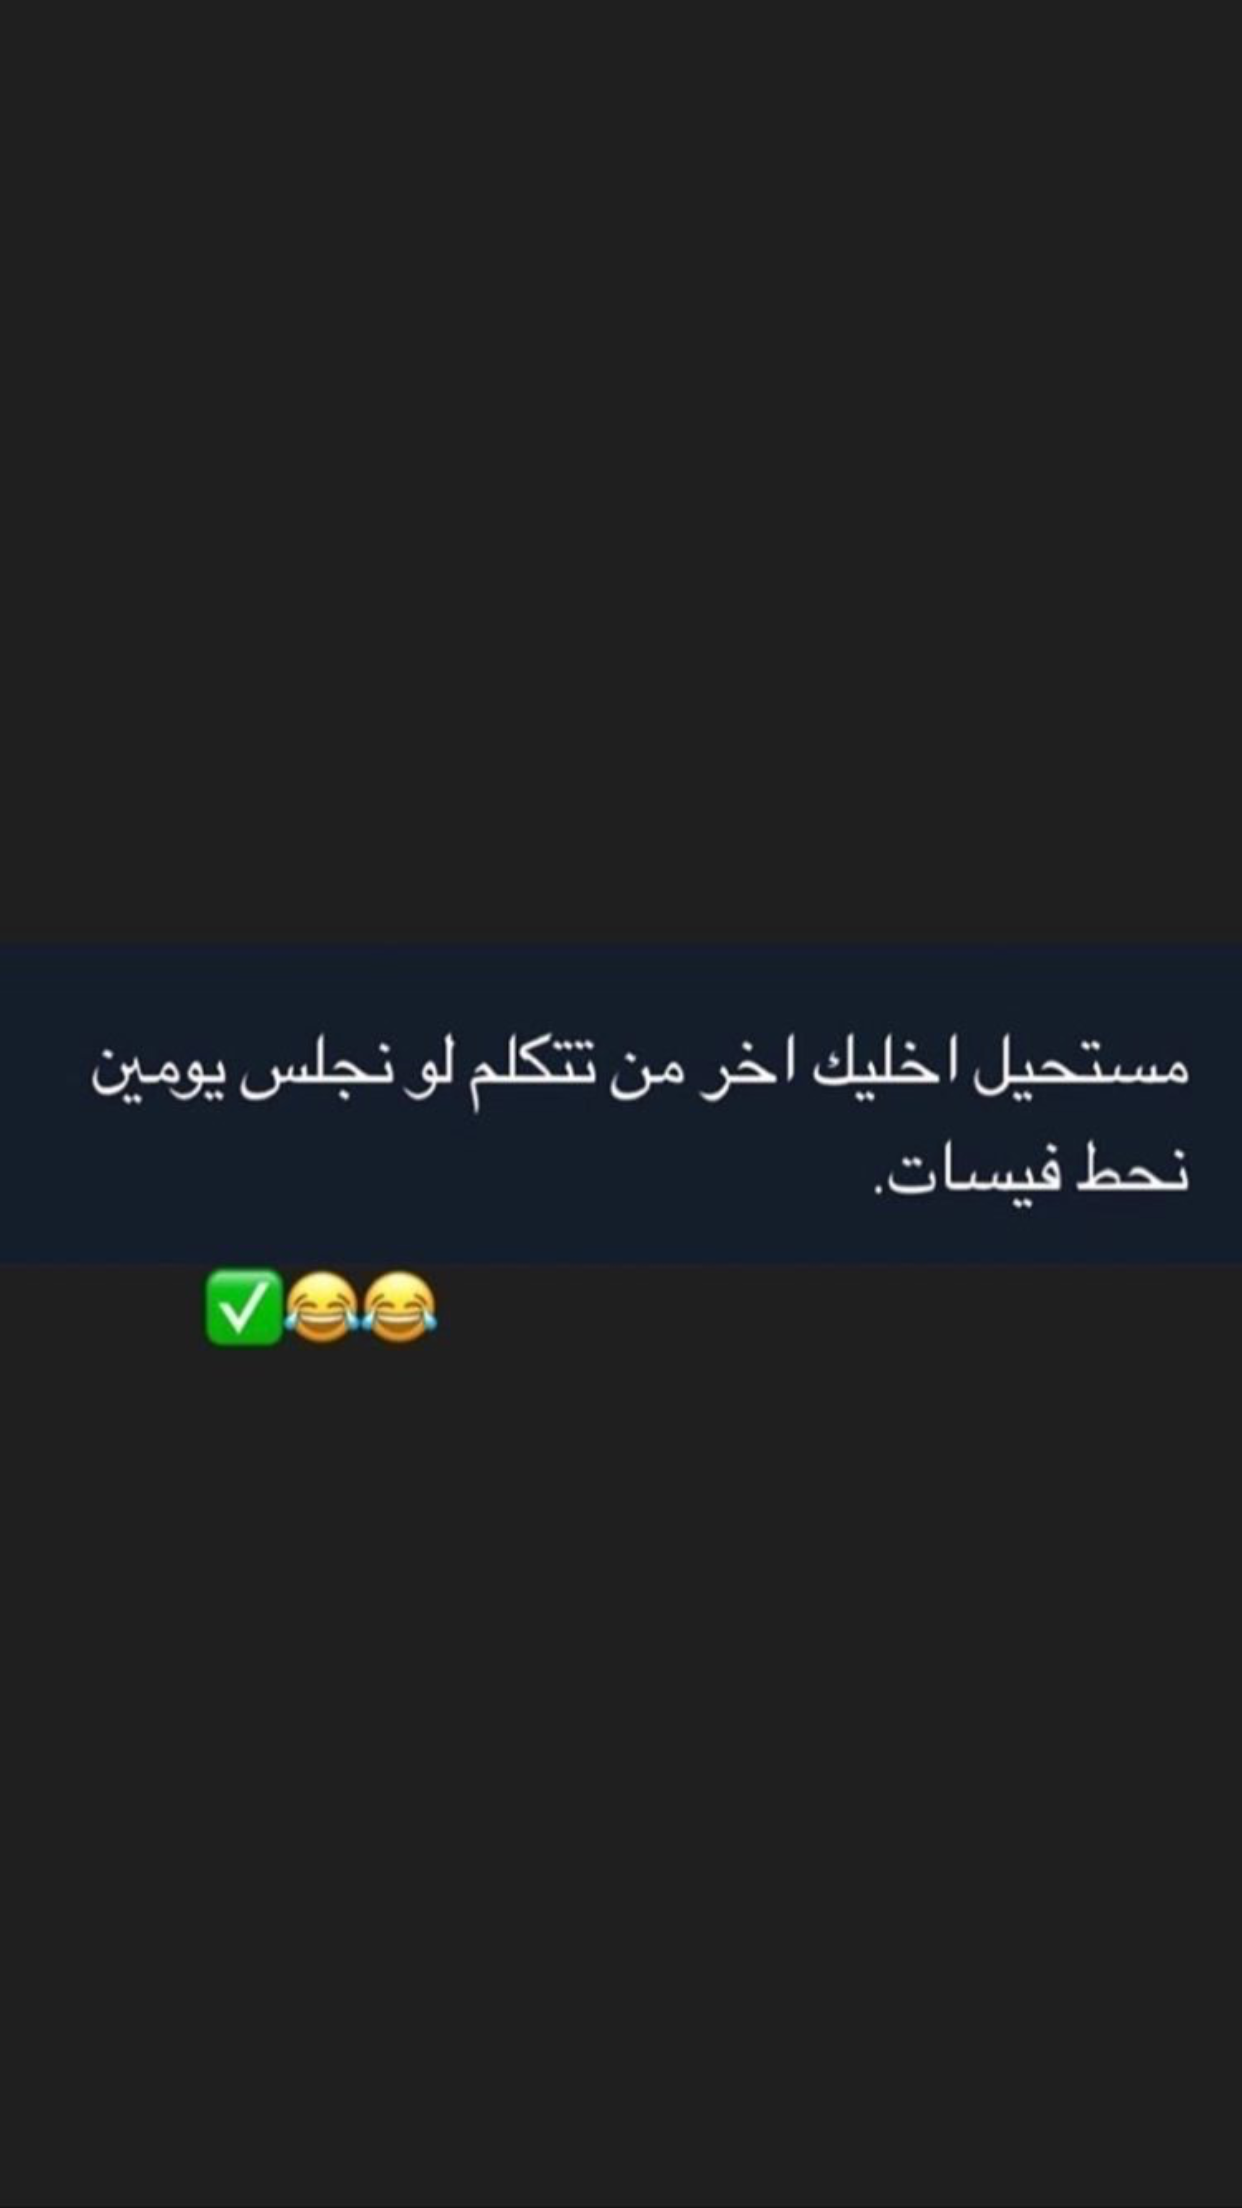 Pin By Abrar Bassam On Quotation Funny Arabic Quotes Bff Quotes Study Motivation Quotes